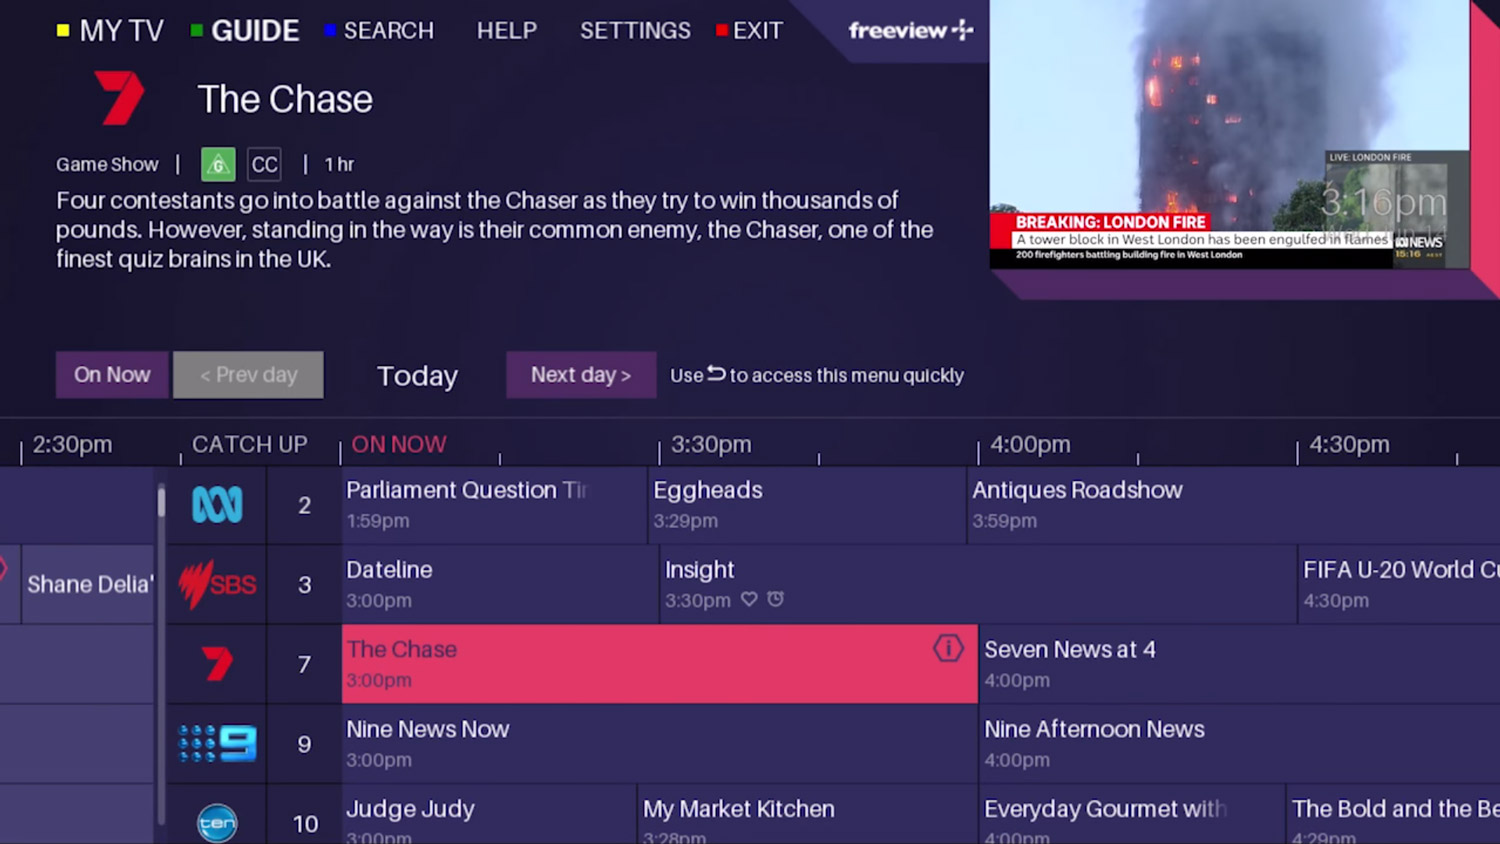 New Freeview Plus program guide